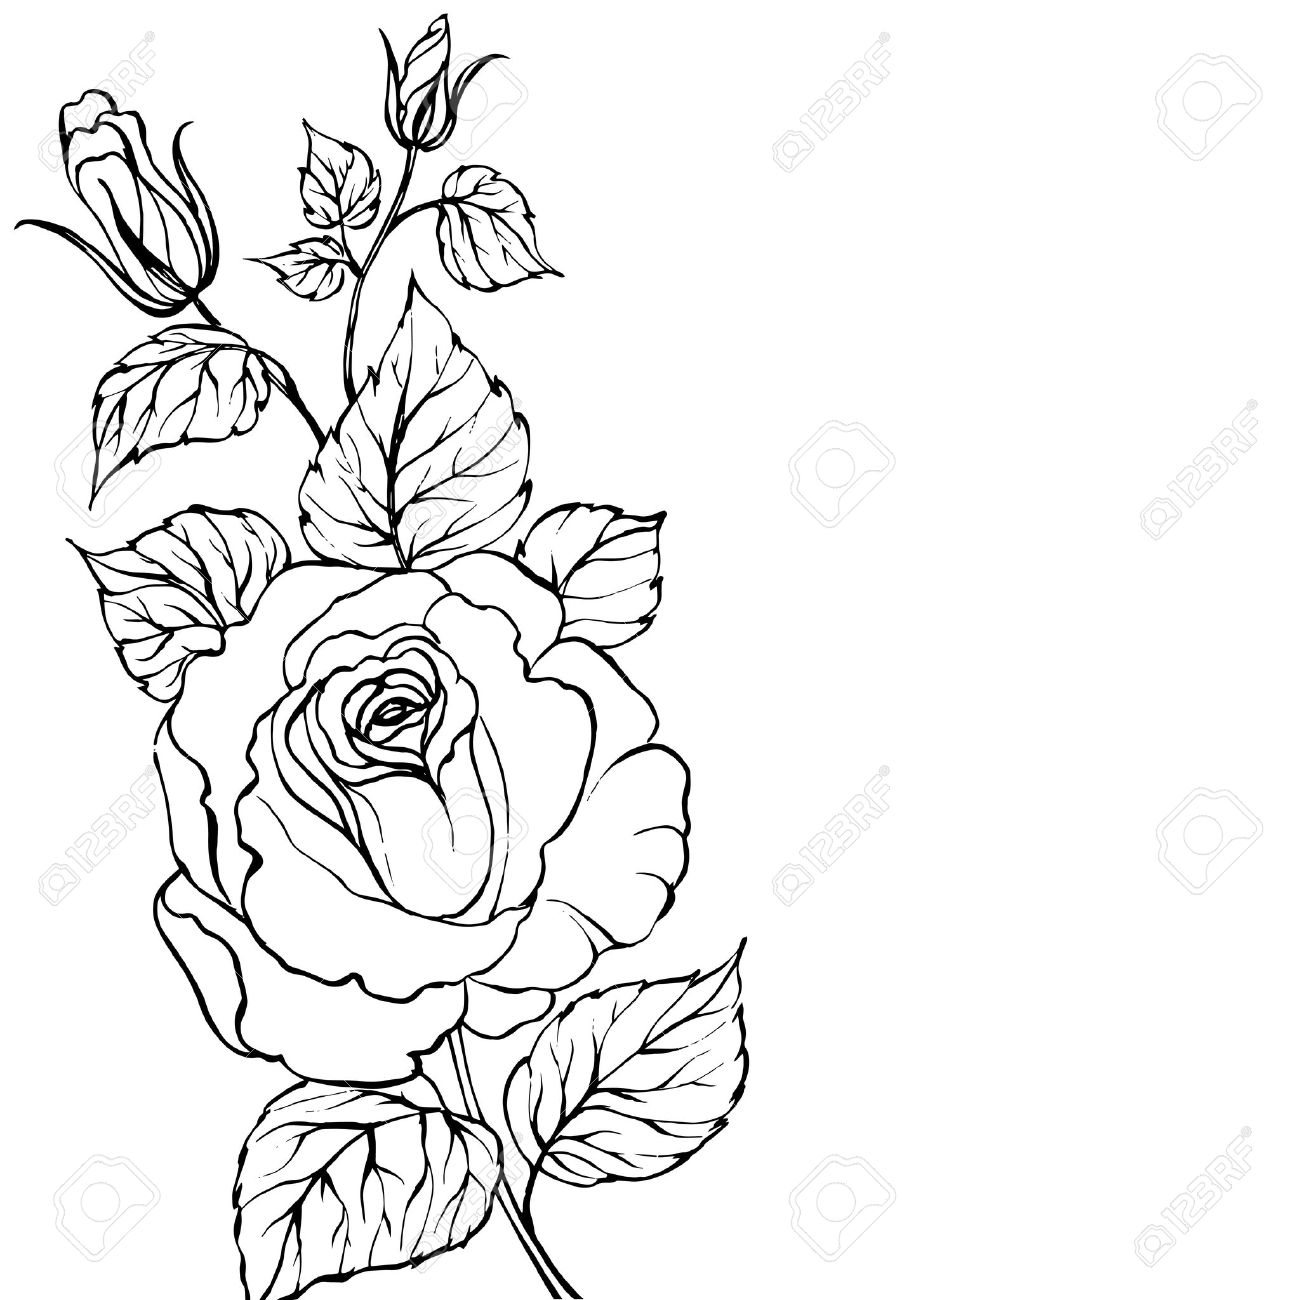 Drawn rose rose blossom Download  Drawing Outline Drawing